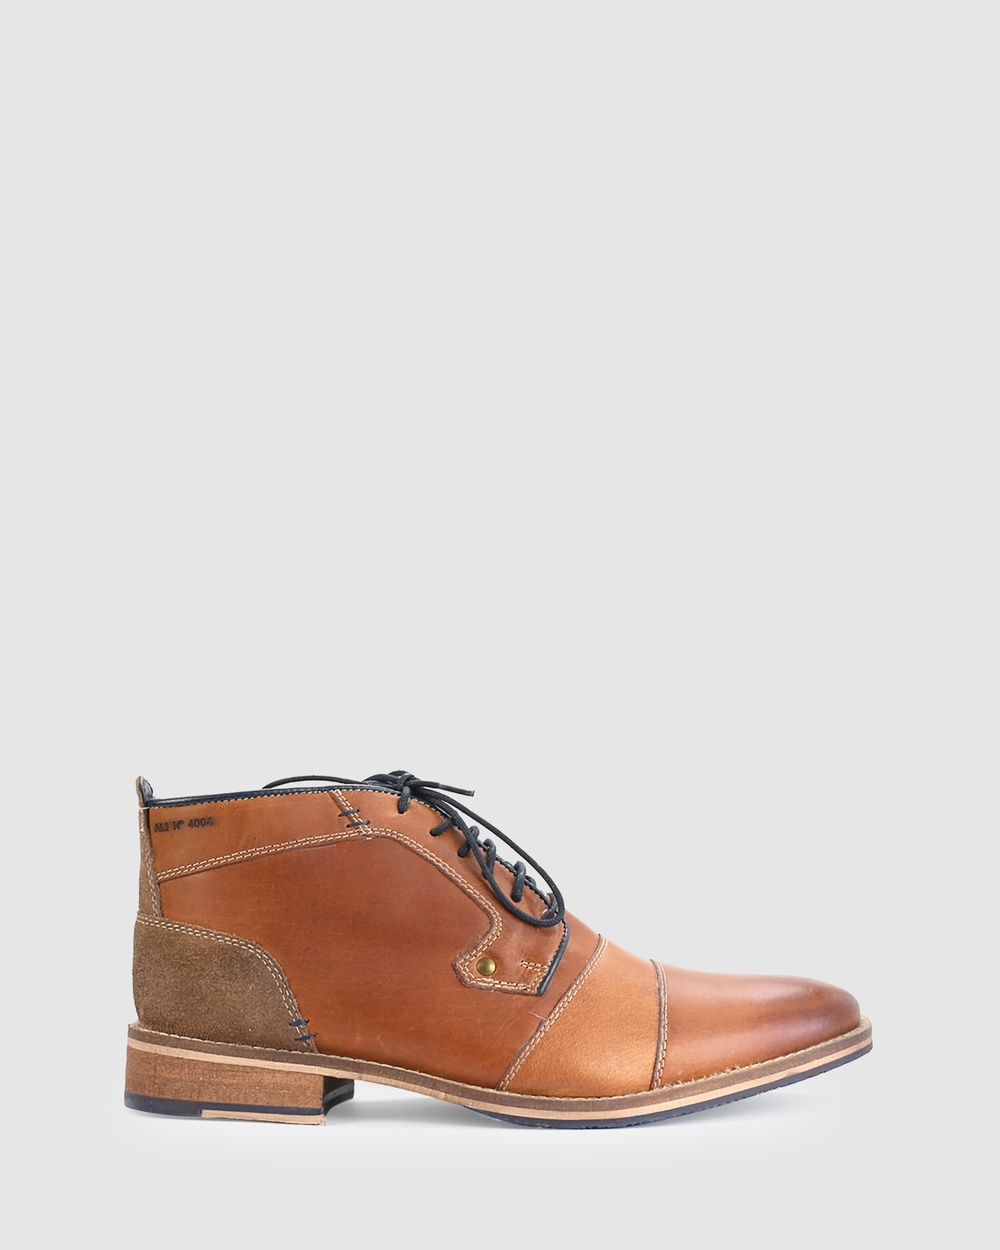 Acton Ali Boots Brown